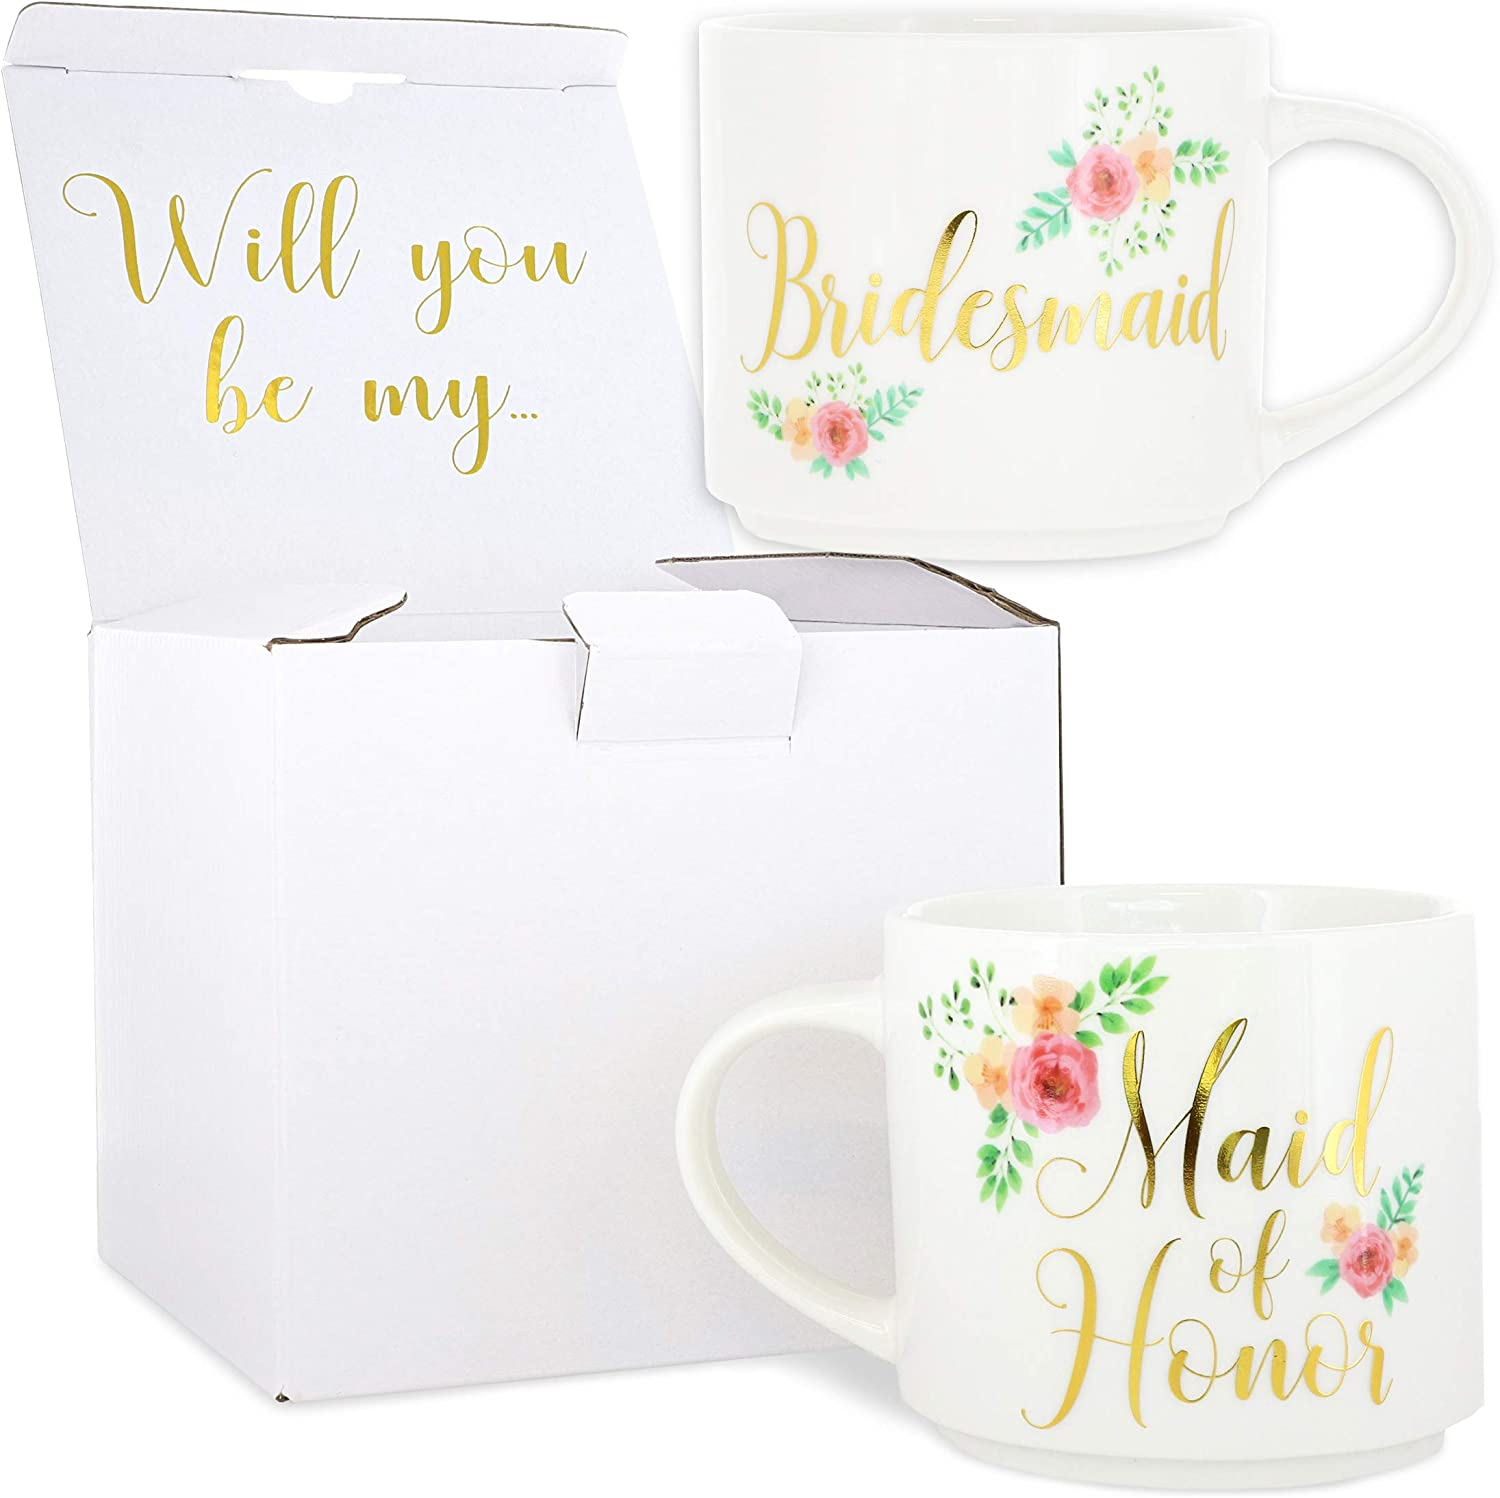 Blue Panda 2-Pack Stackable Bone China Coffee Mug, Maid of Honor & Bridesmaid, 15oz